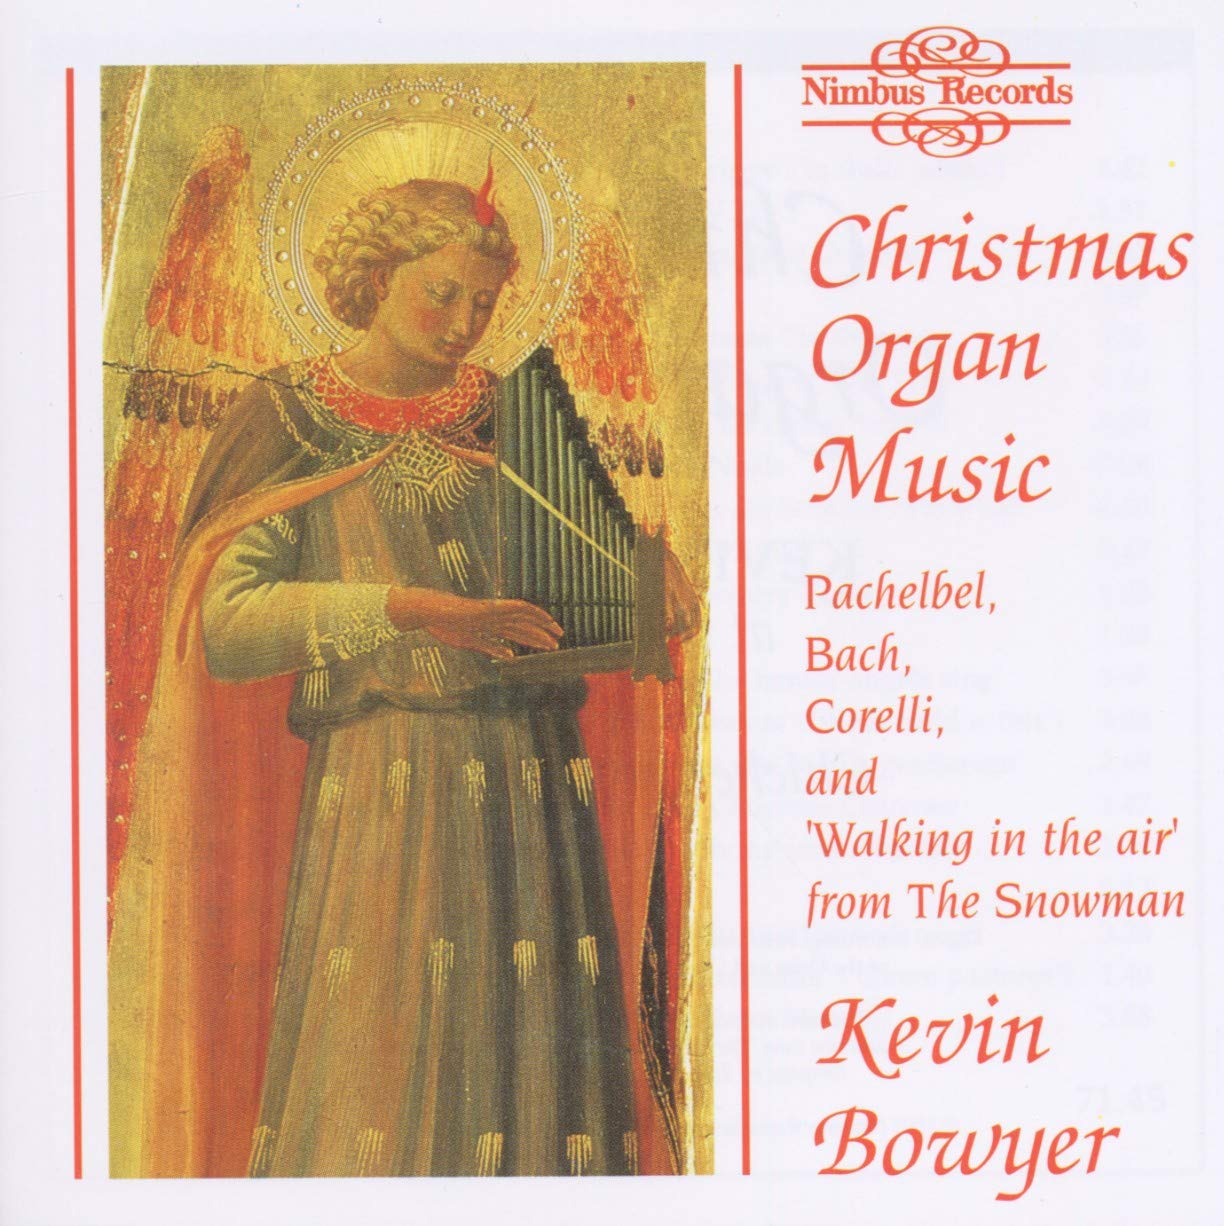 Christmas Sales for sale Clearance SALE! Limited time! Organ Music